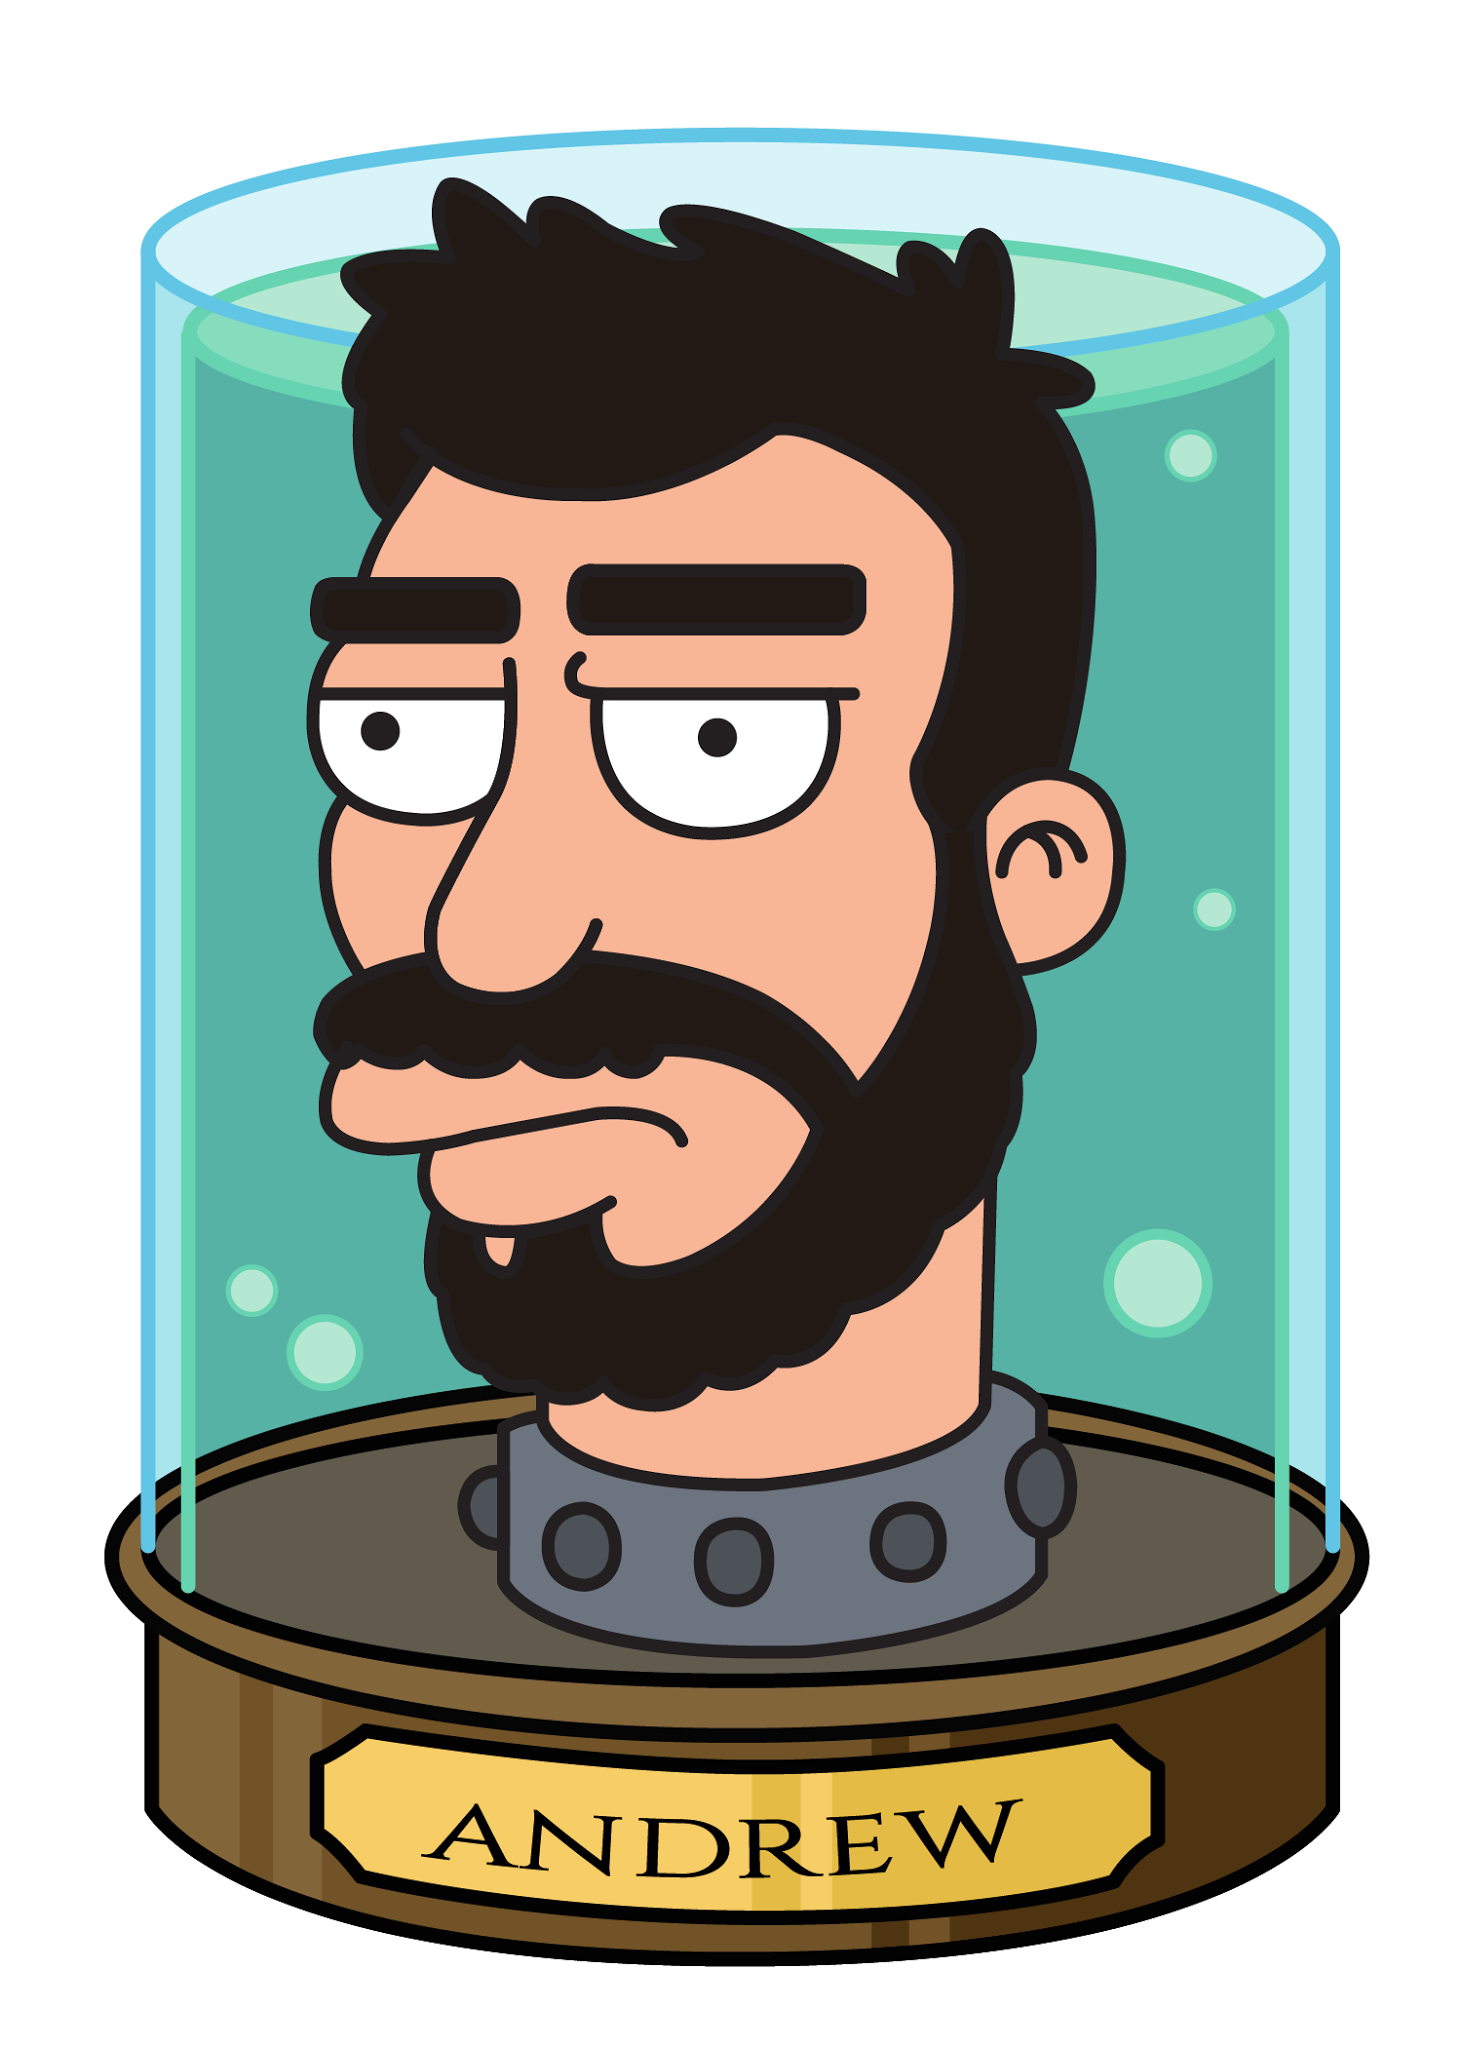 Here's Andrew Green in the classic 'Futurama' style.